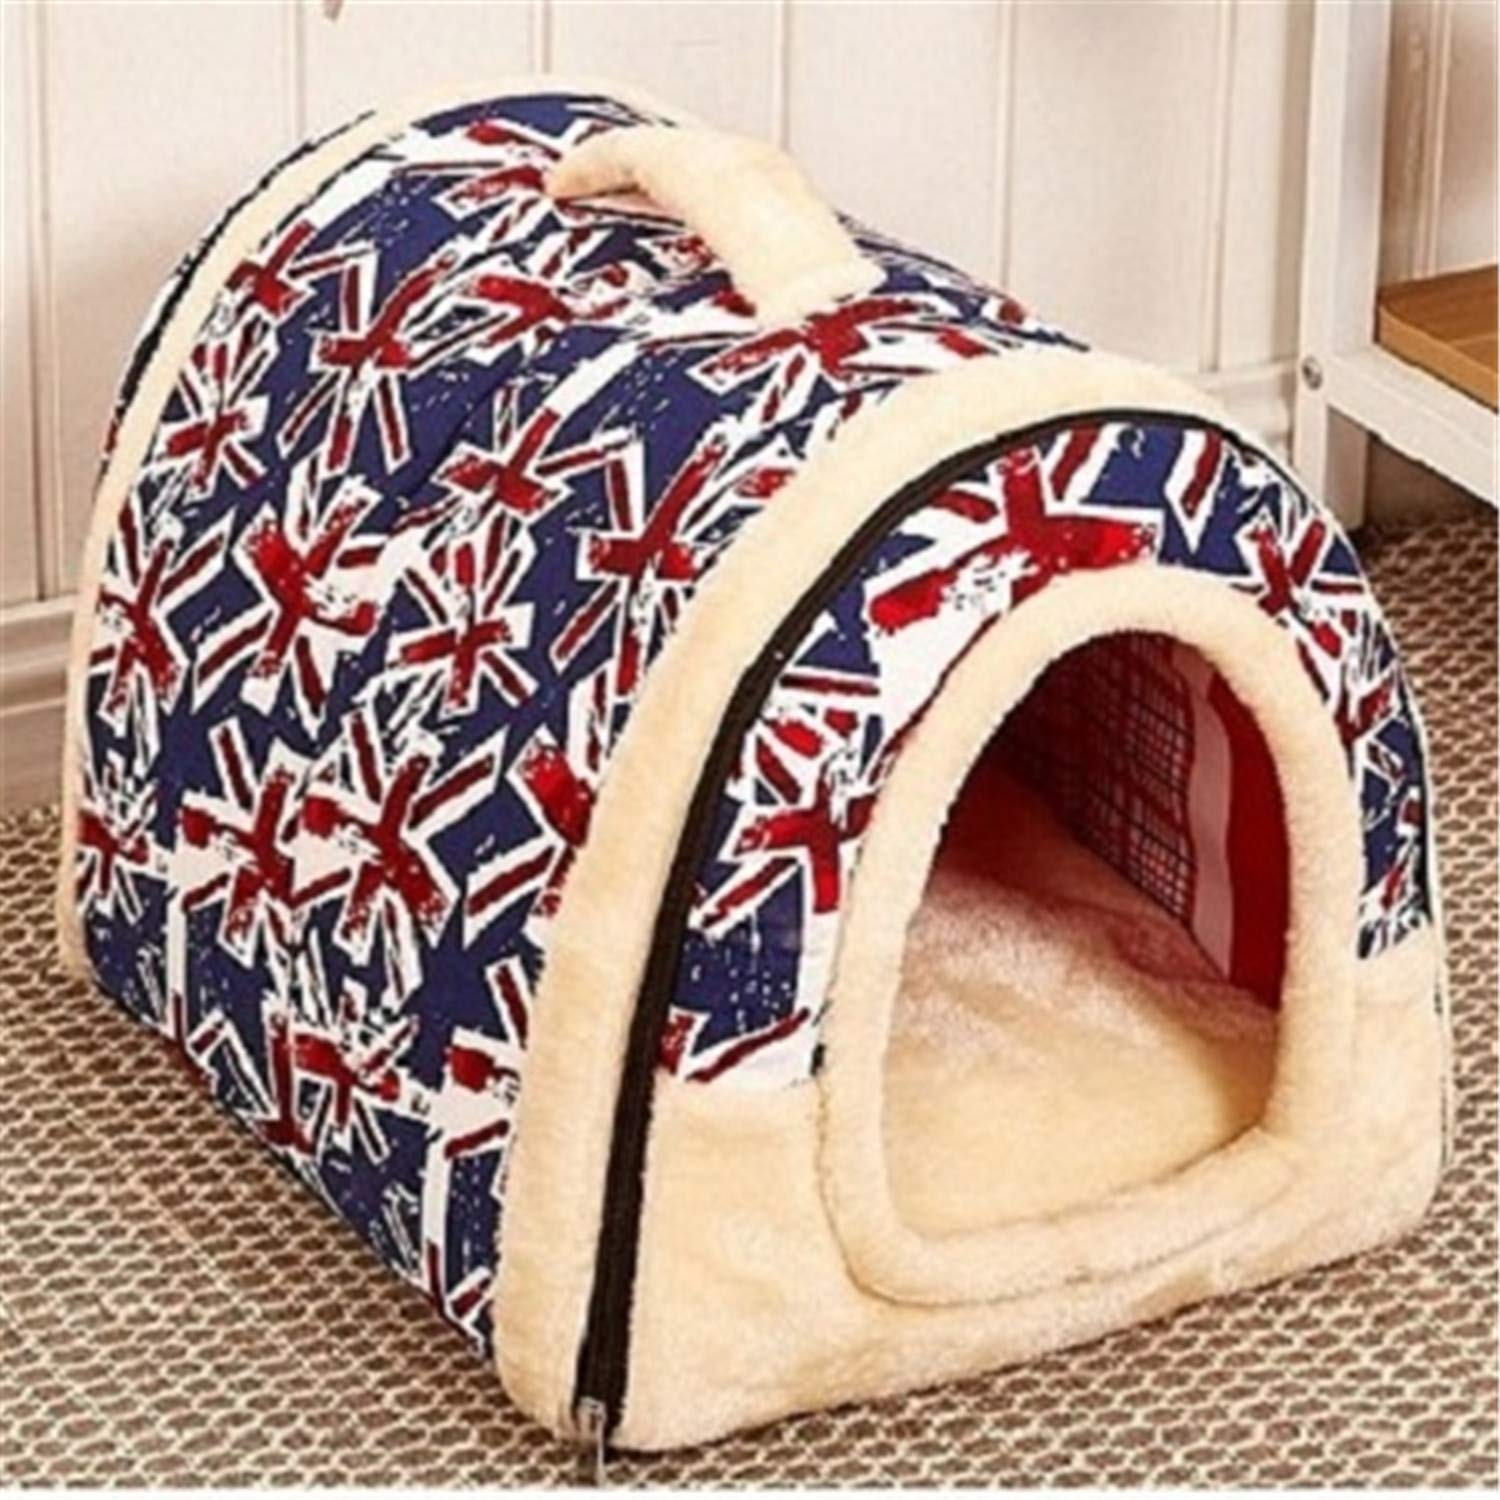 As The Picture-4 L As The Picture-4 L Pet Dog House Nest with Mat Foldable Pet Dog Bed Cat Bed House for Small Medium Dogs Travel Kennels for Cats Pet Products